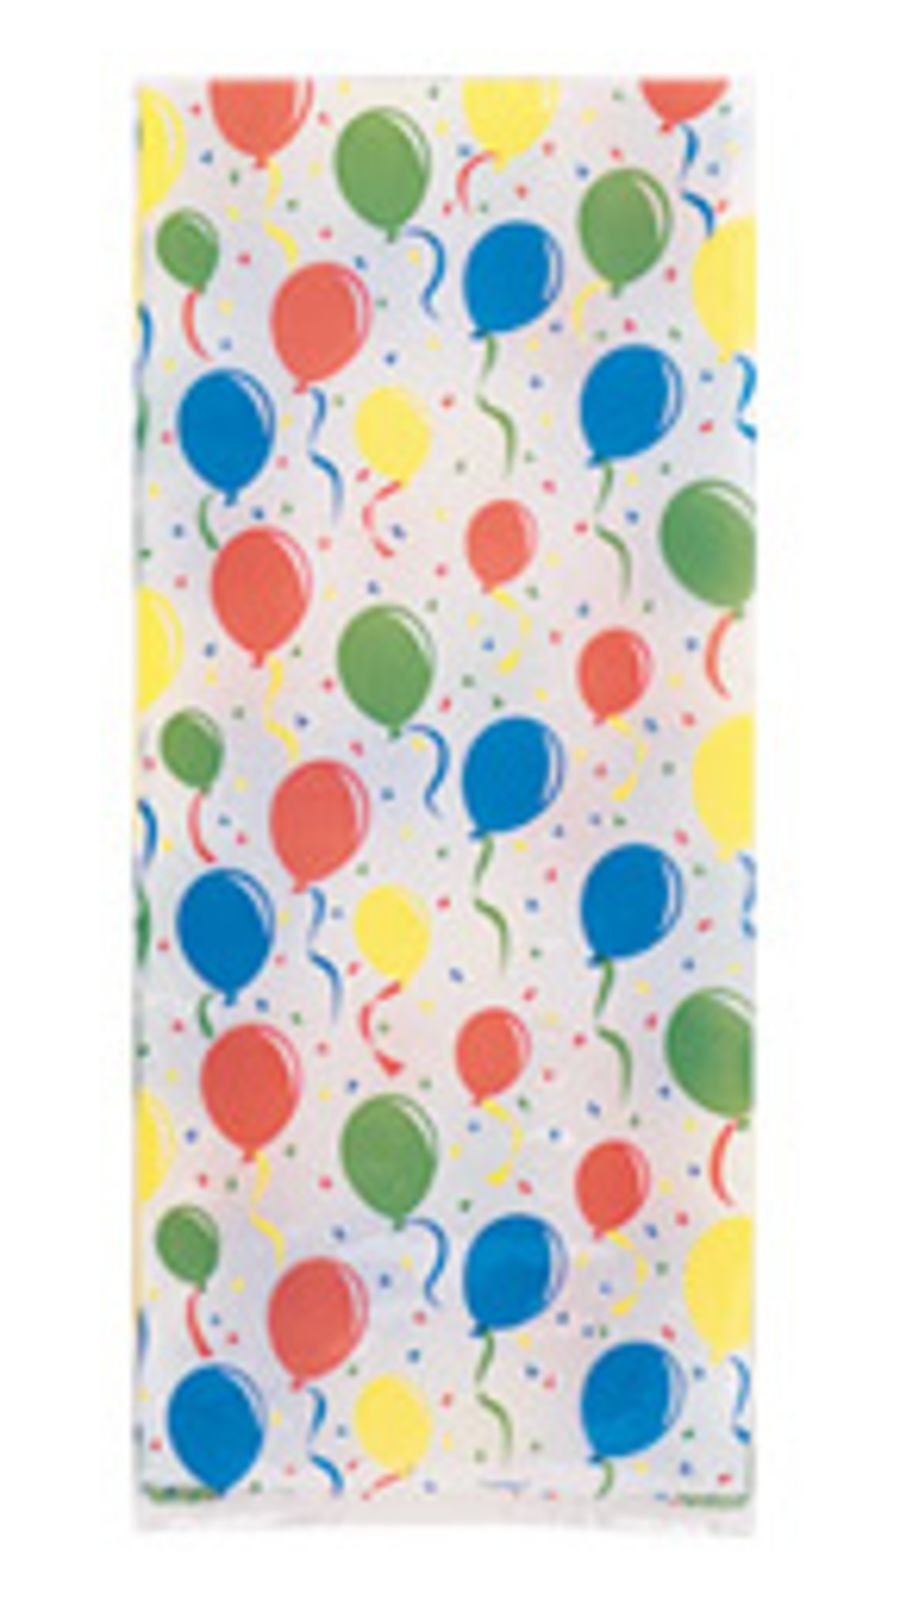 Festive Balloons Cello Bags - Pack of 20